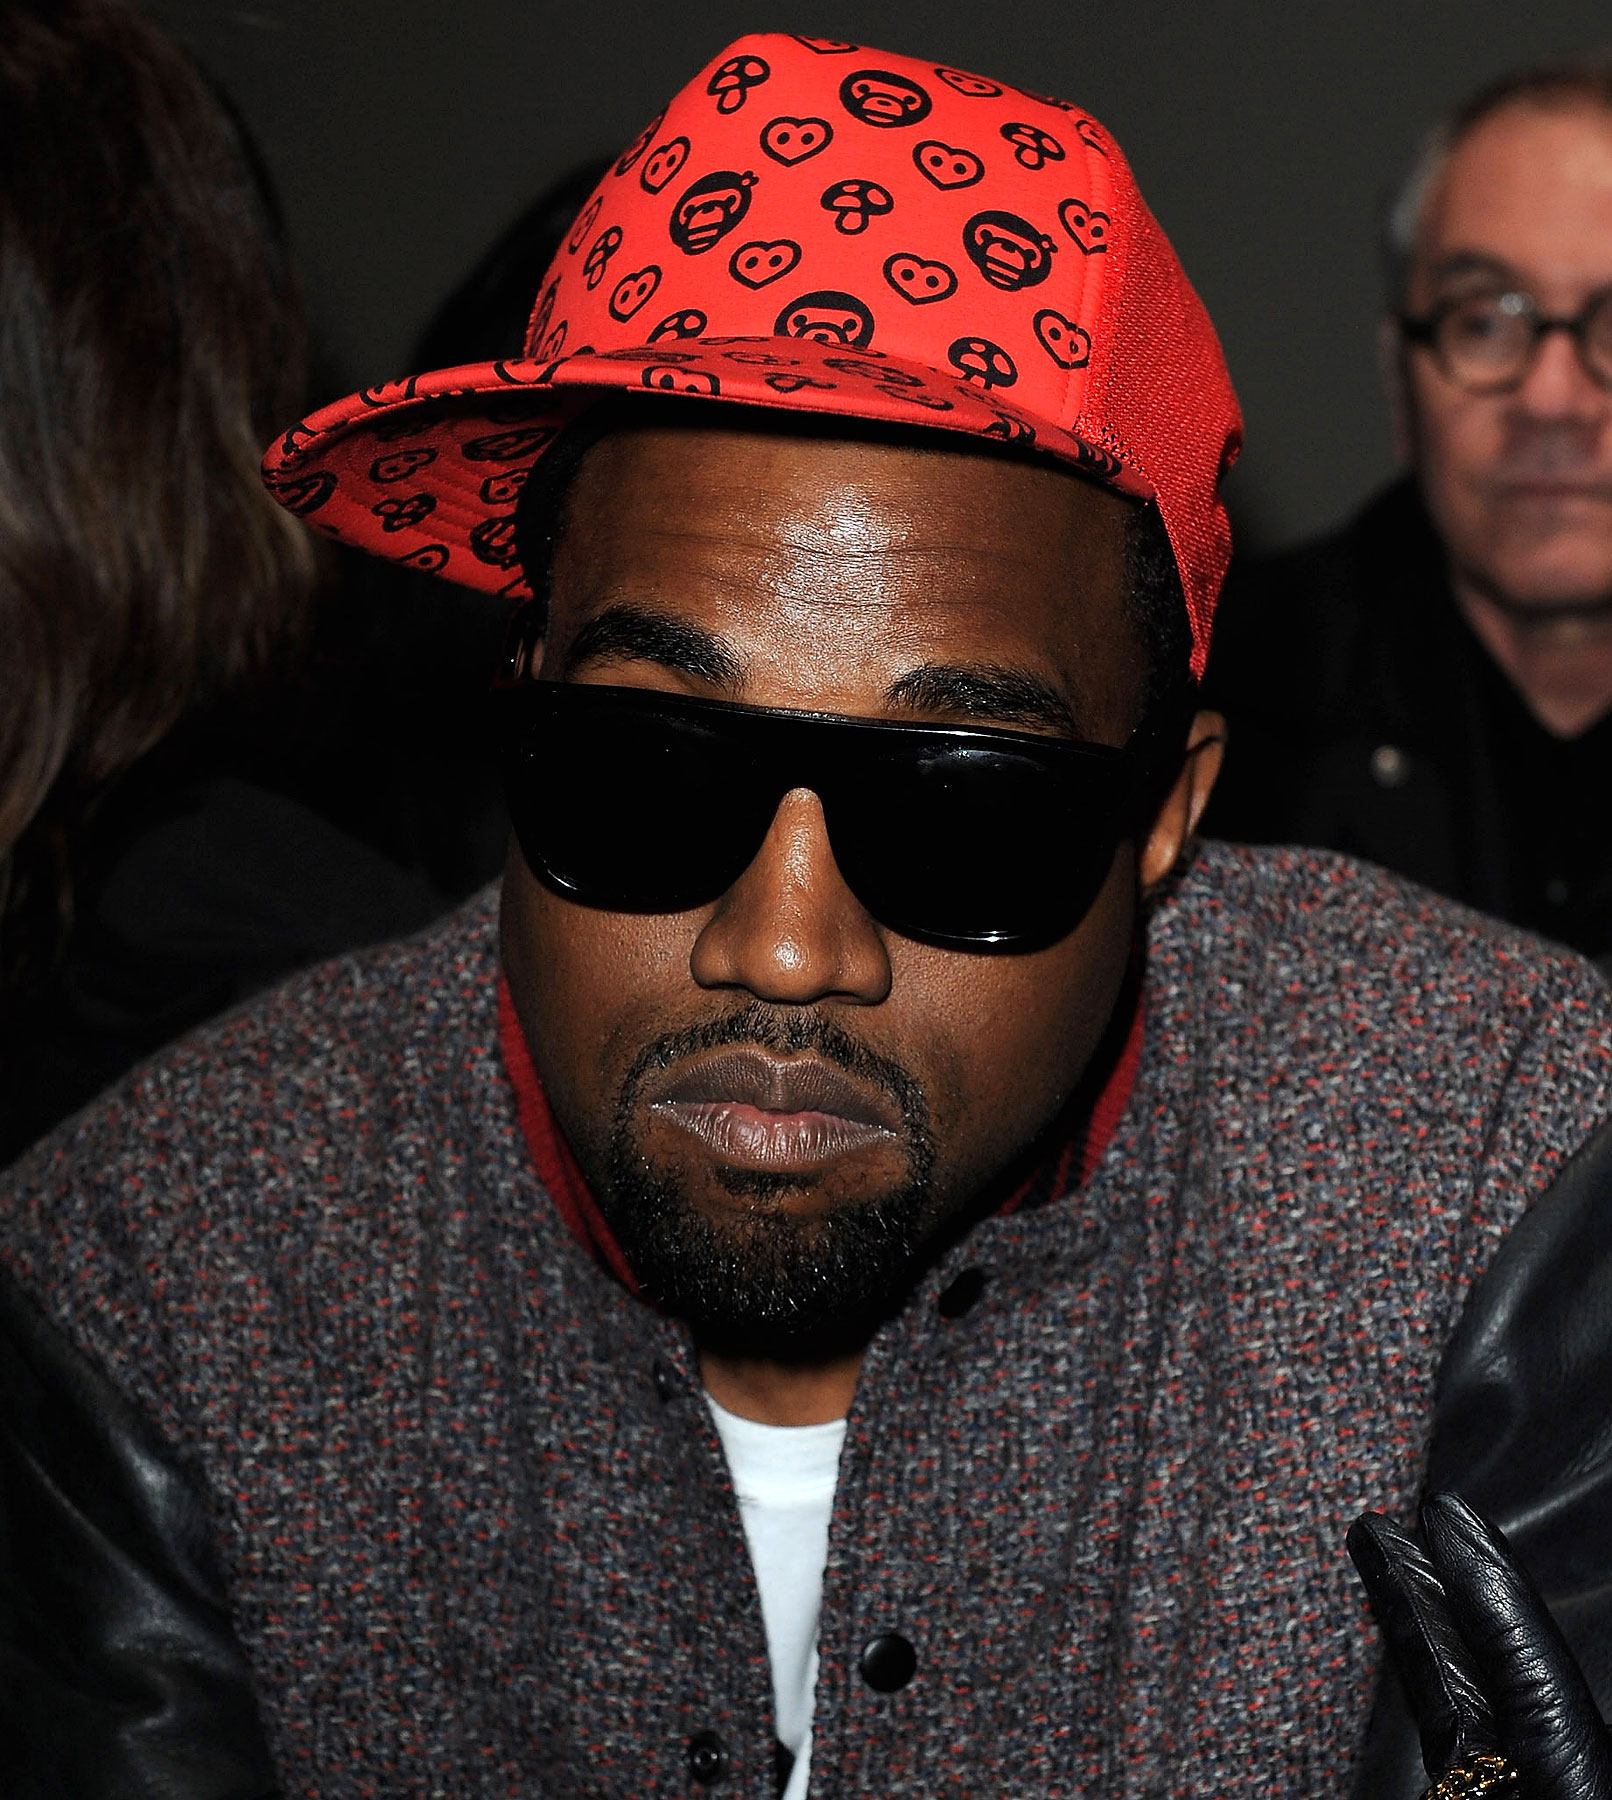 VIDEO: Kanye West Experiences a 'South Park' Conversion